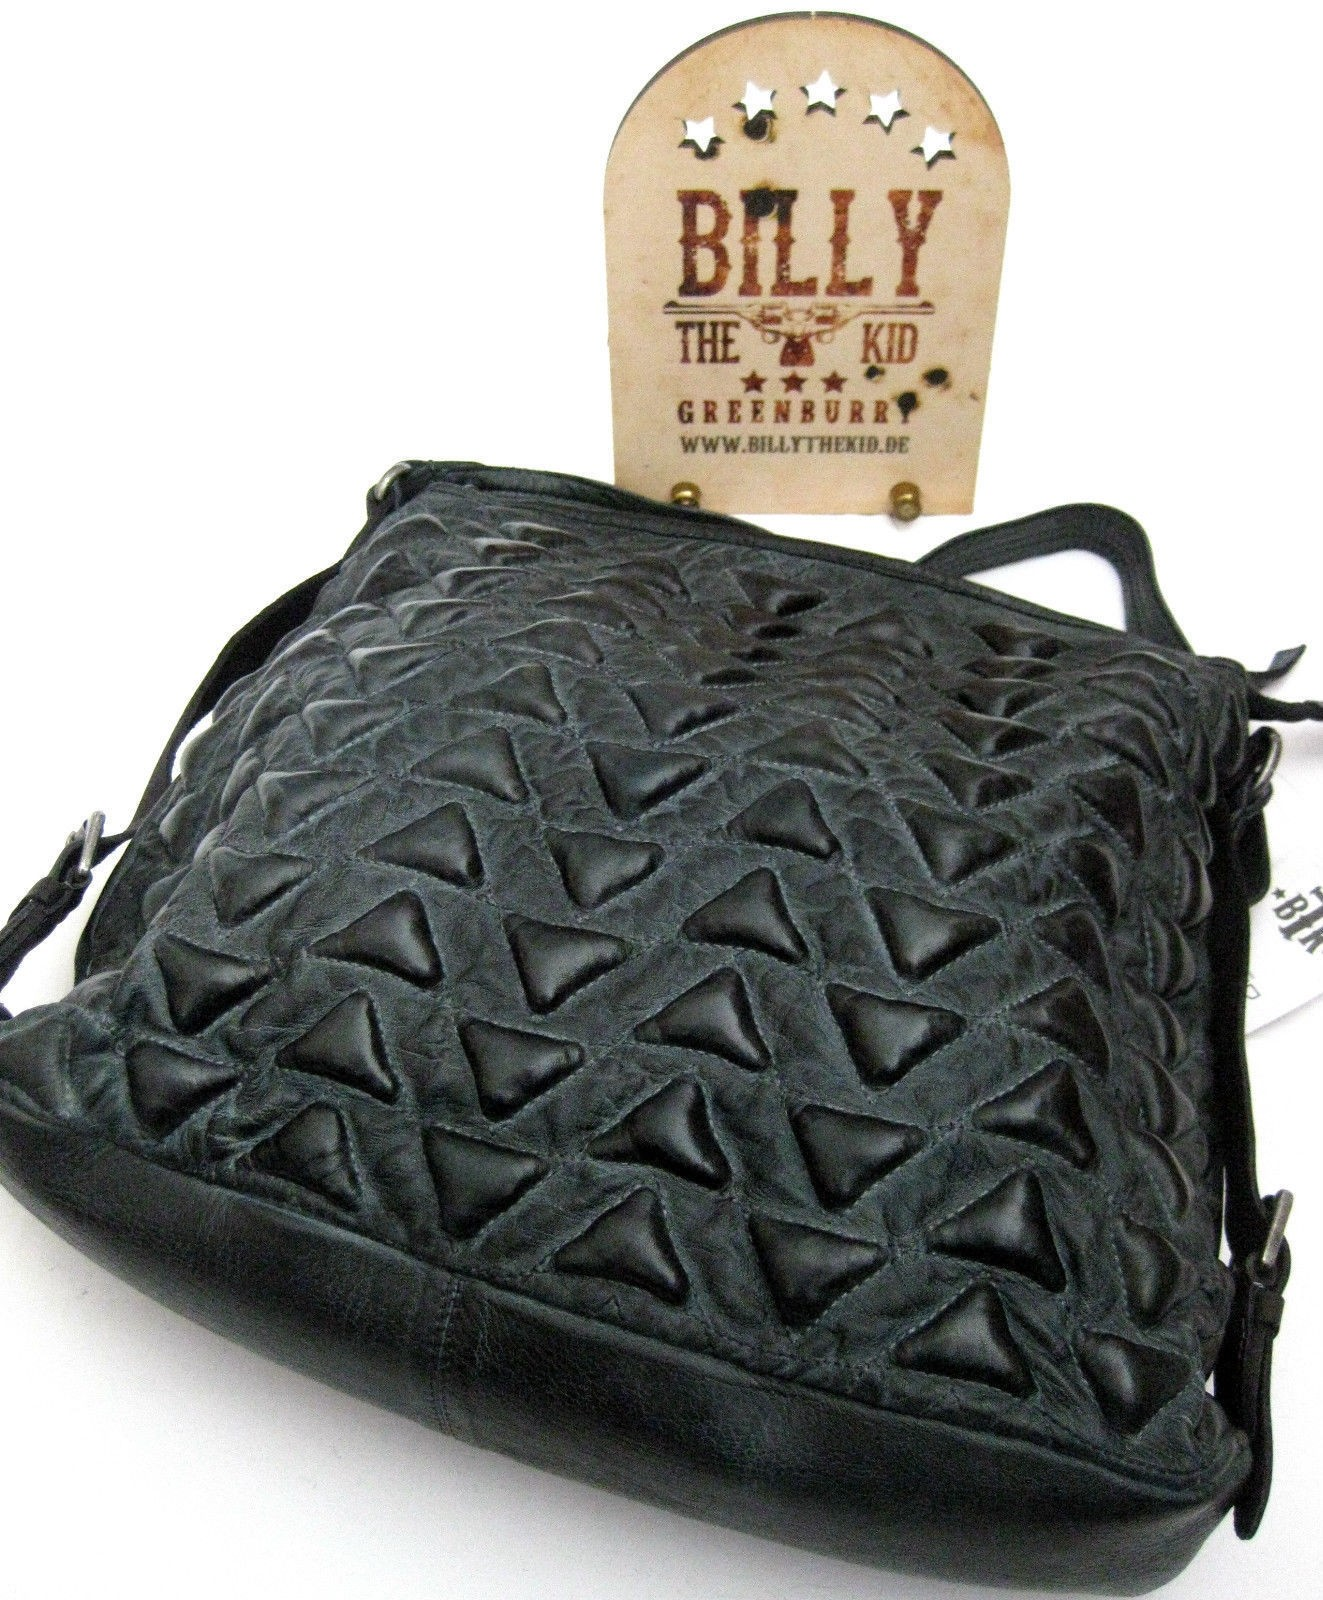 Billy The Kid MAROKKO Ledertasche Umhängetasche Alia Damentasche petrol